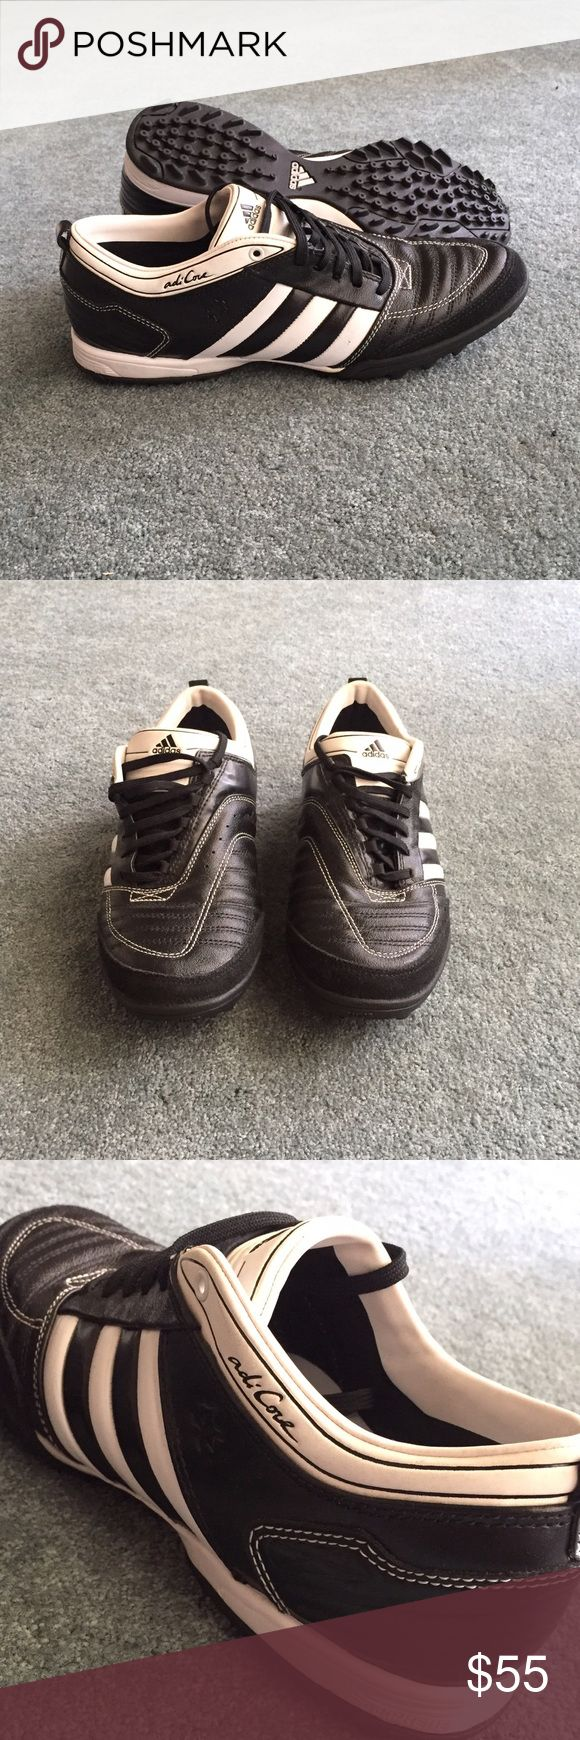 Adidas adiCORE Turf soccer sneakers Like new! Super comfy black and white adidas turf shoes! Size 7.5 Adidas Shoes Sneakers